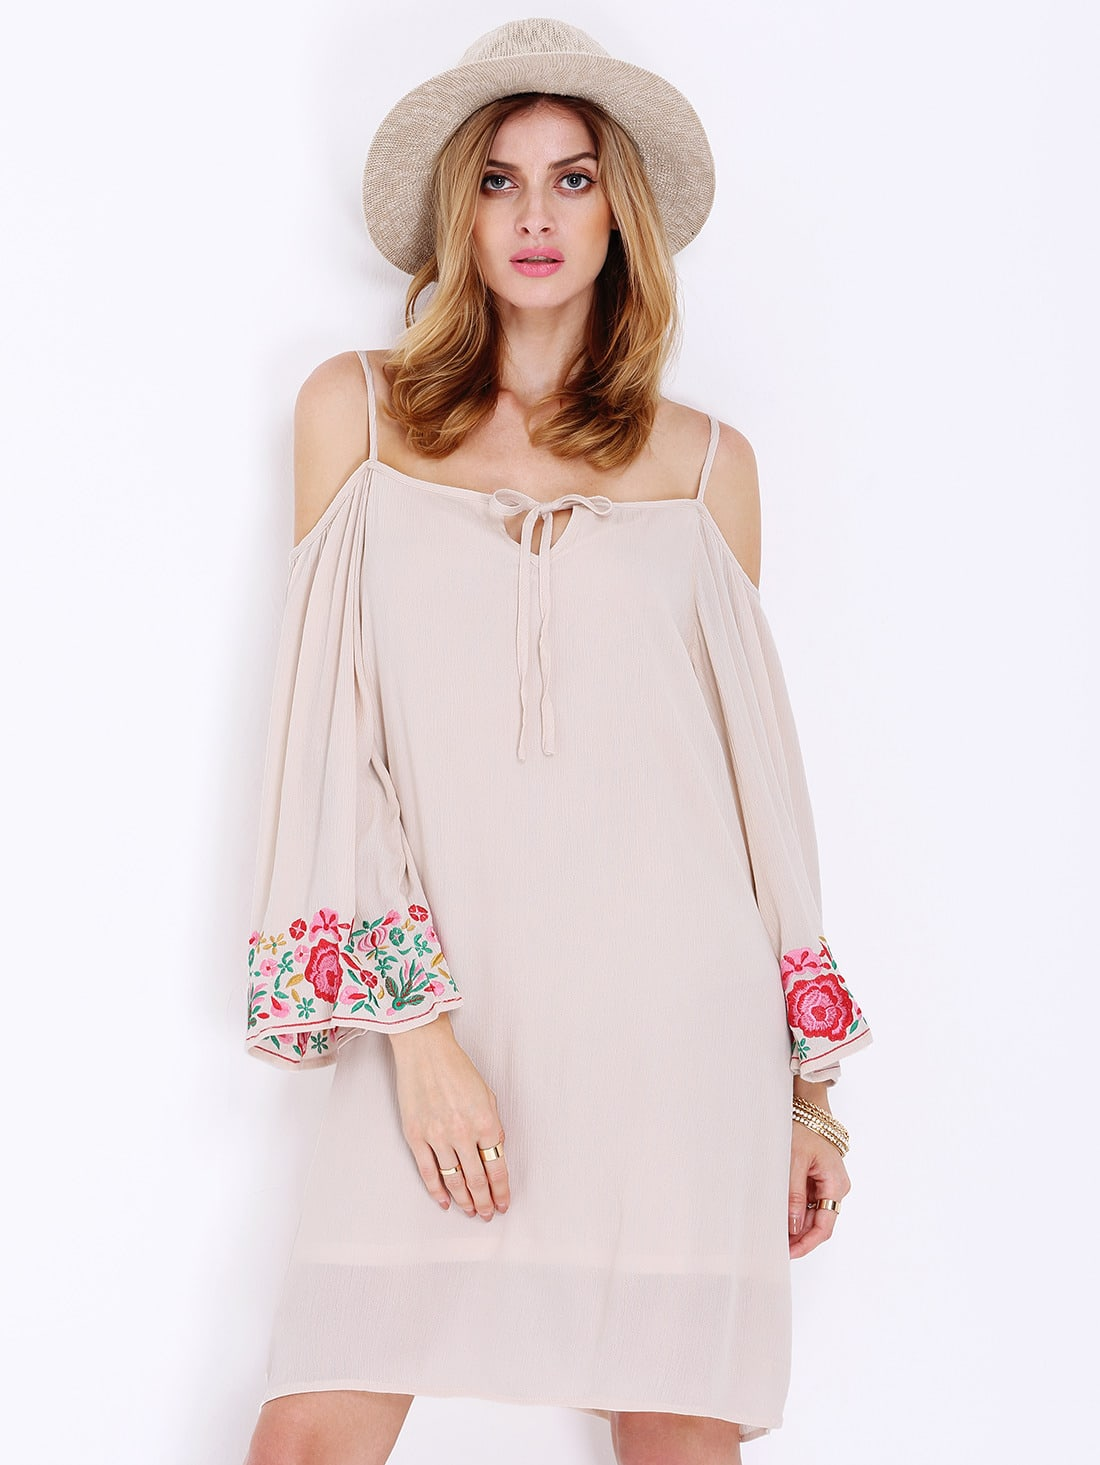 Apricot long sleeve off the shoulder embroidered dressfor